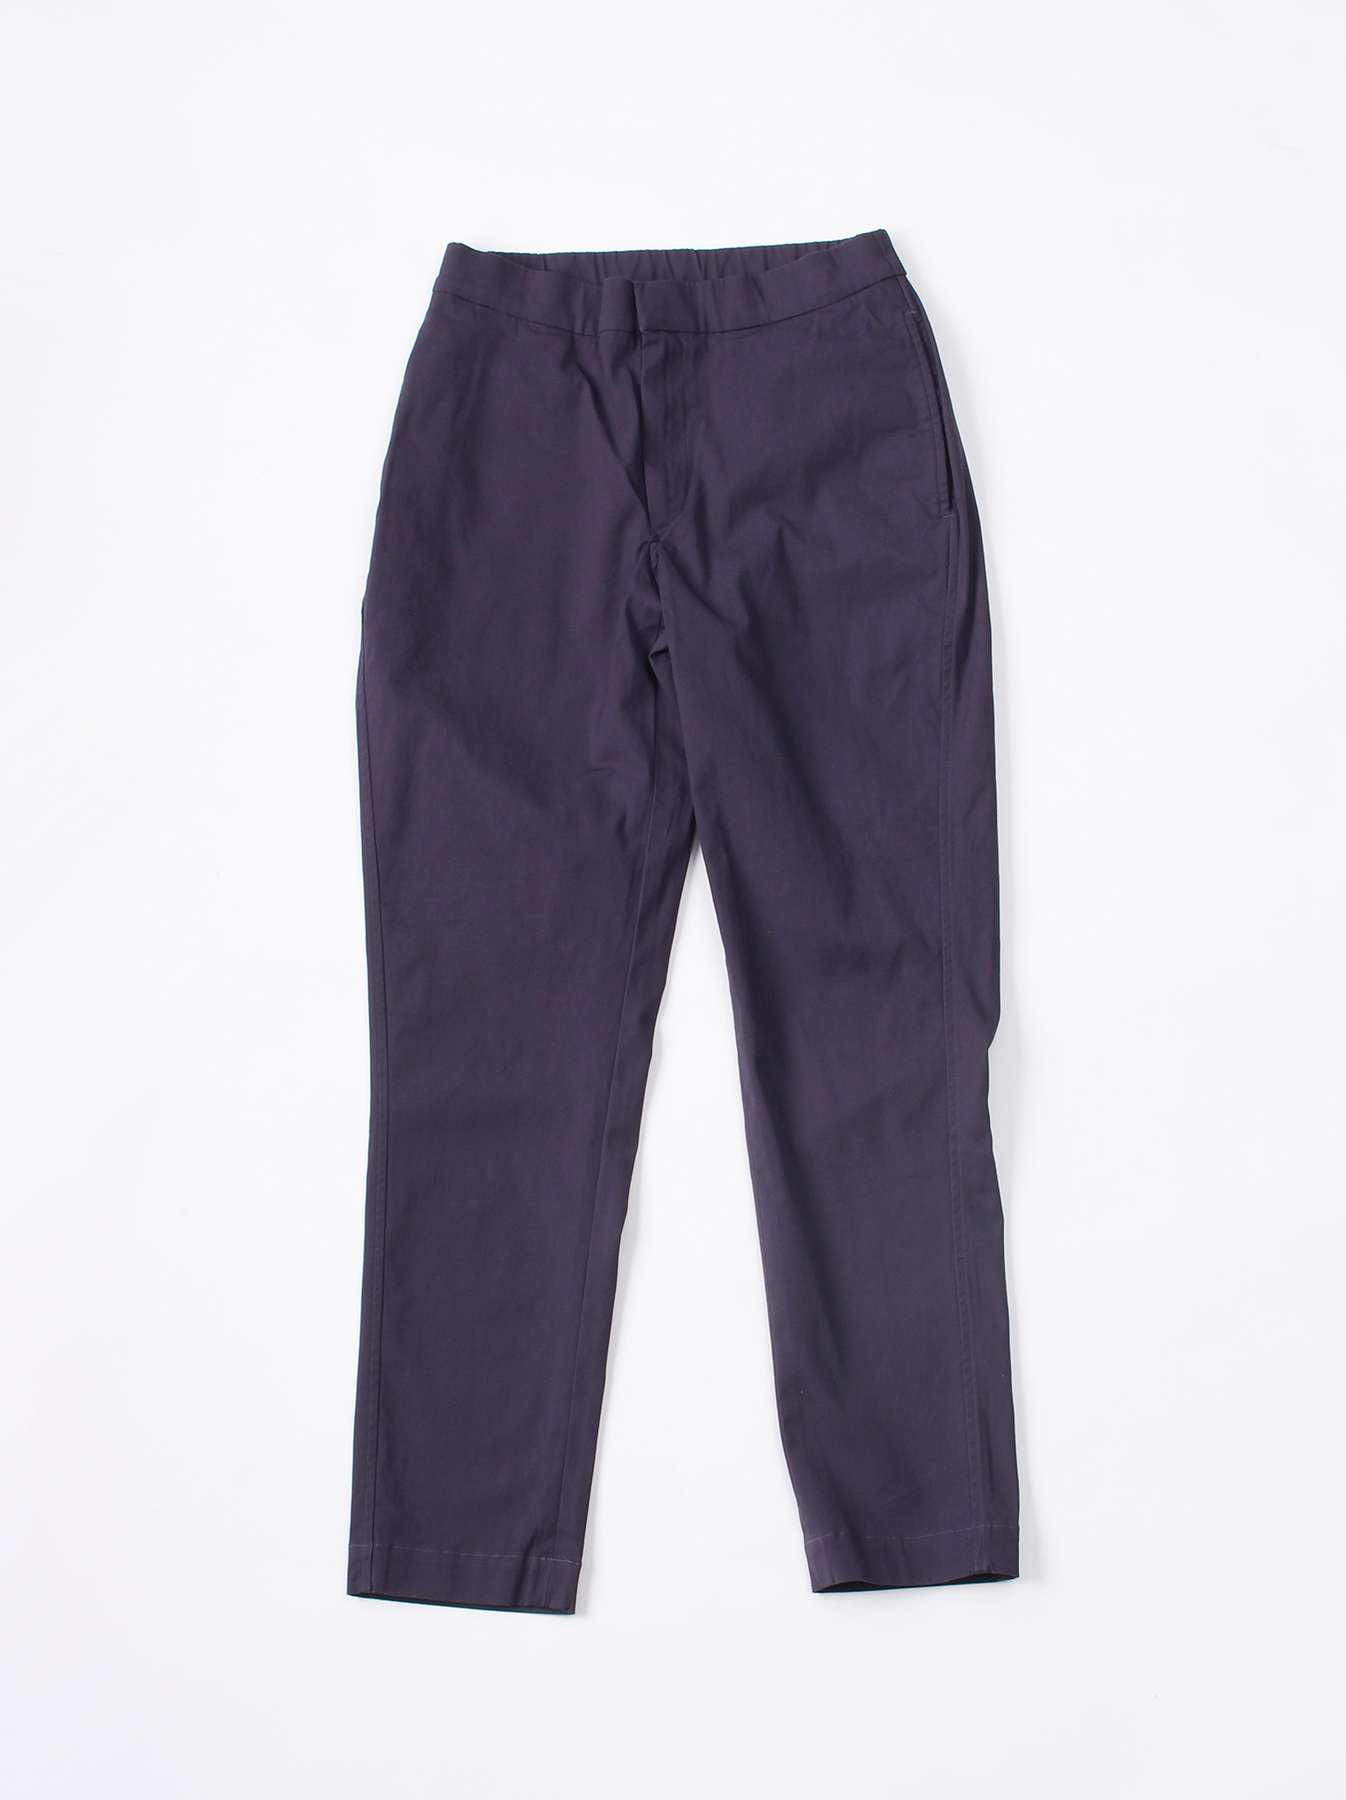 WH Weather Cloth Stretch Pants-1